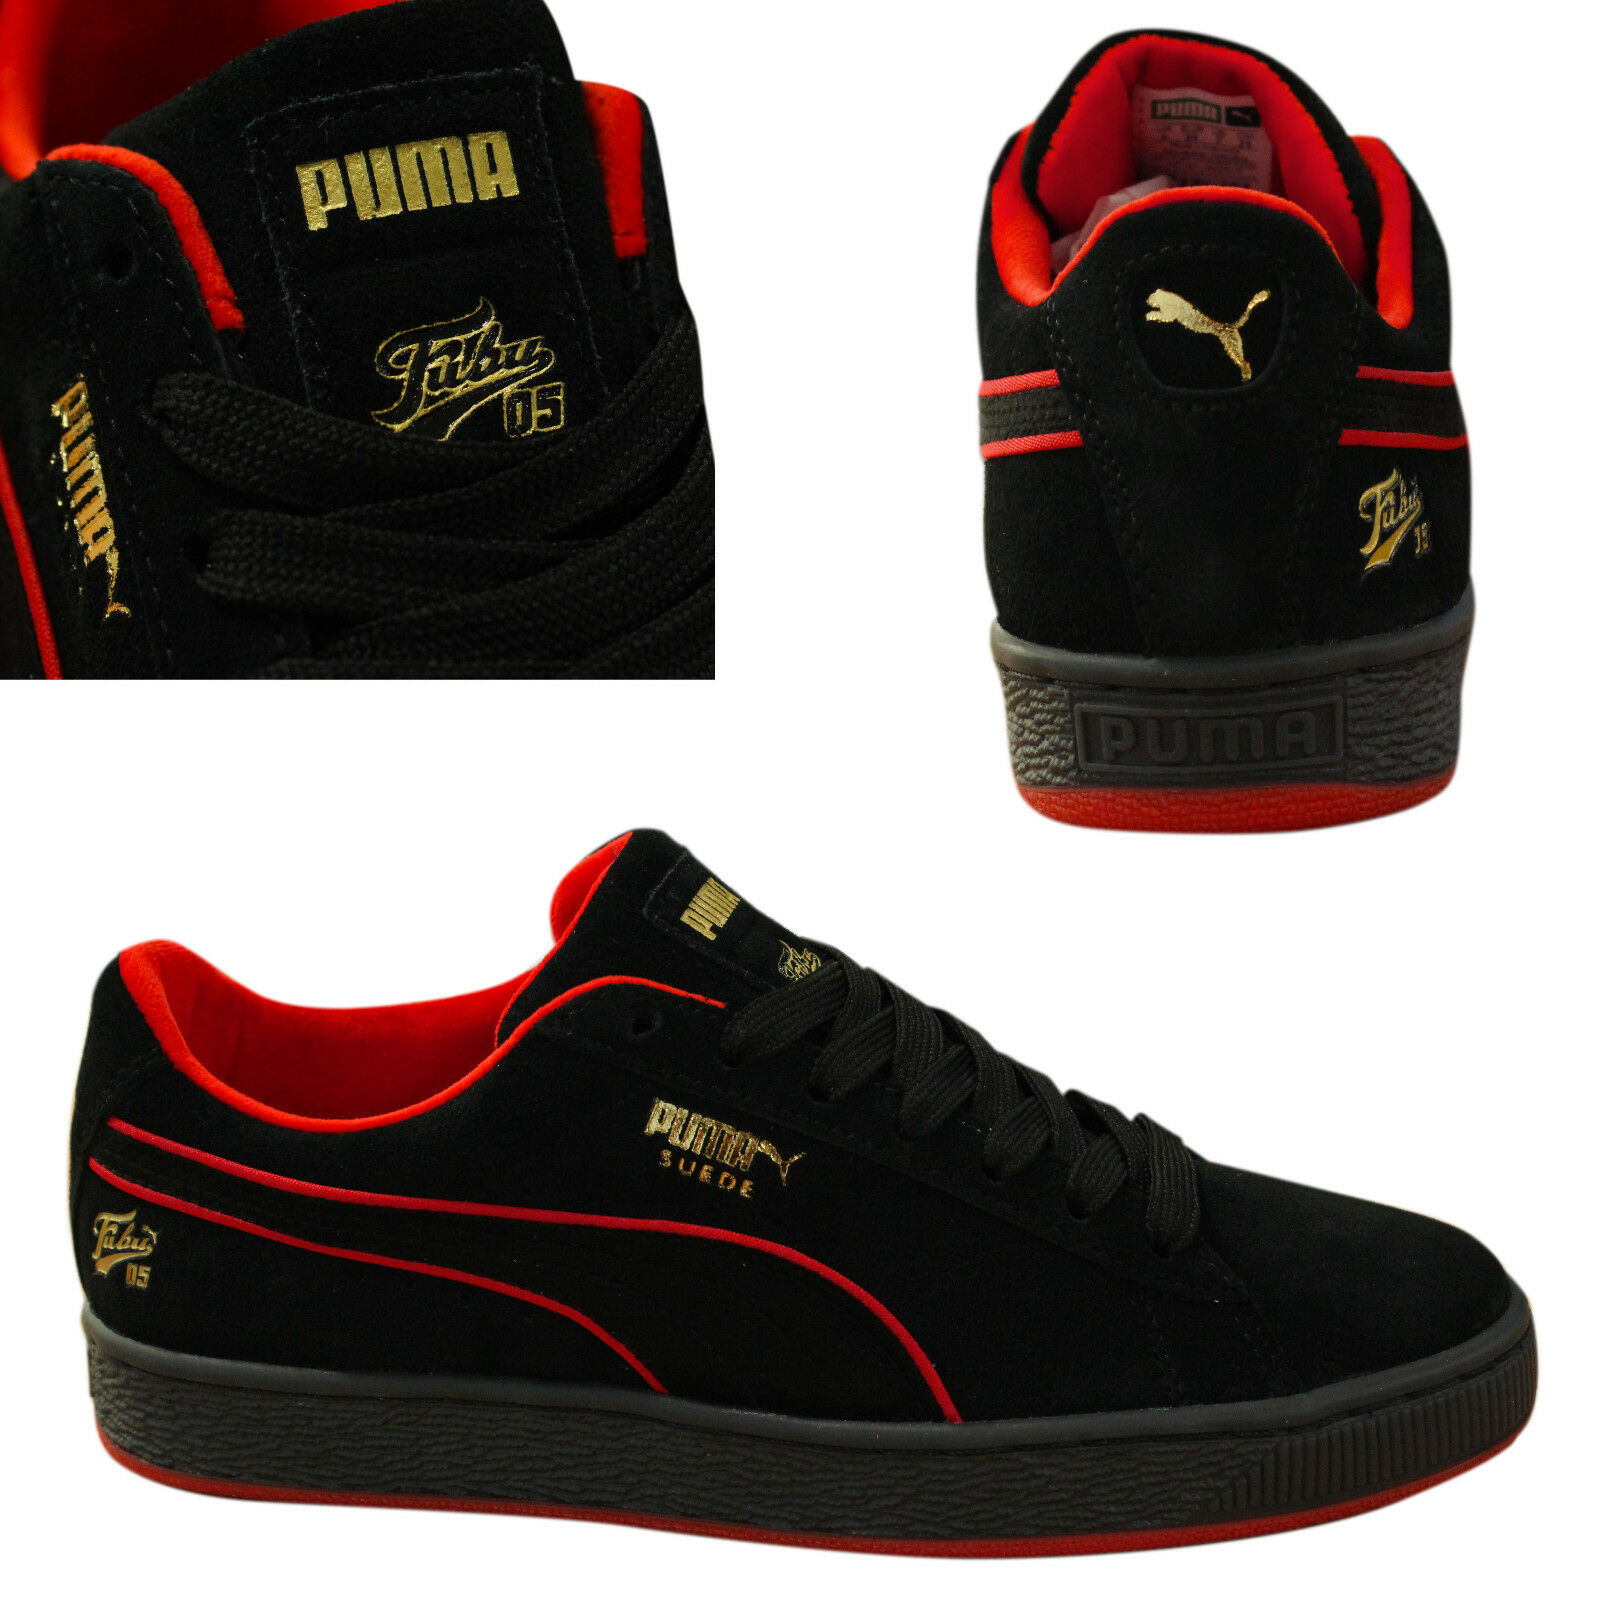 fubu x puma shoes